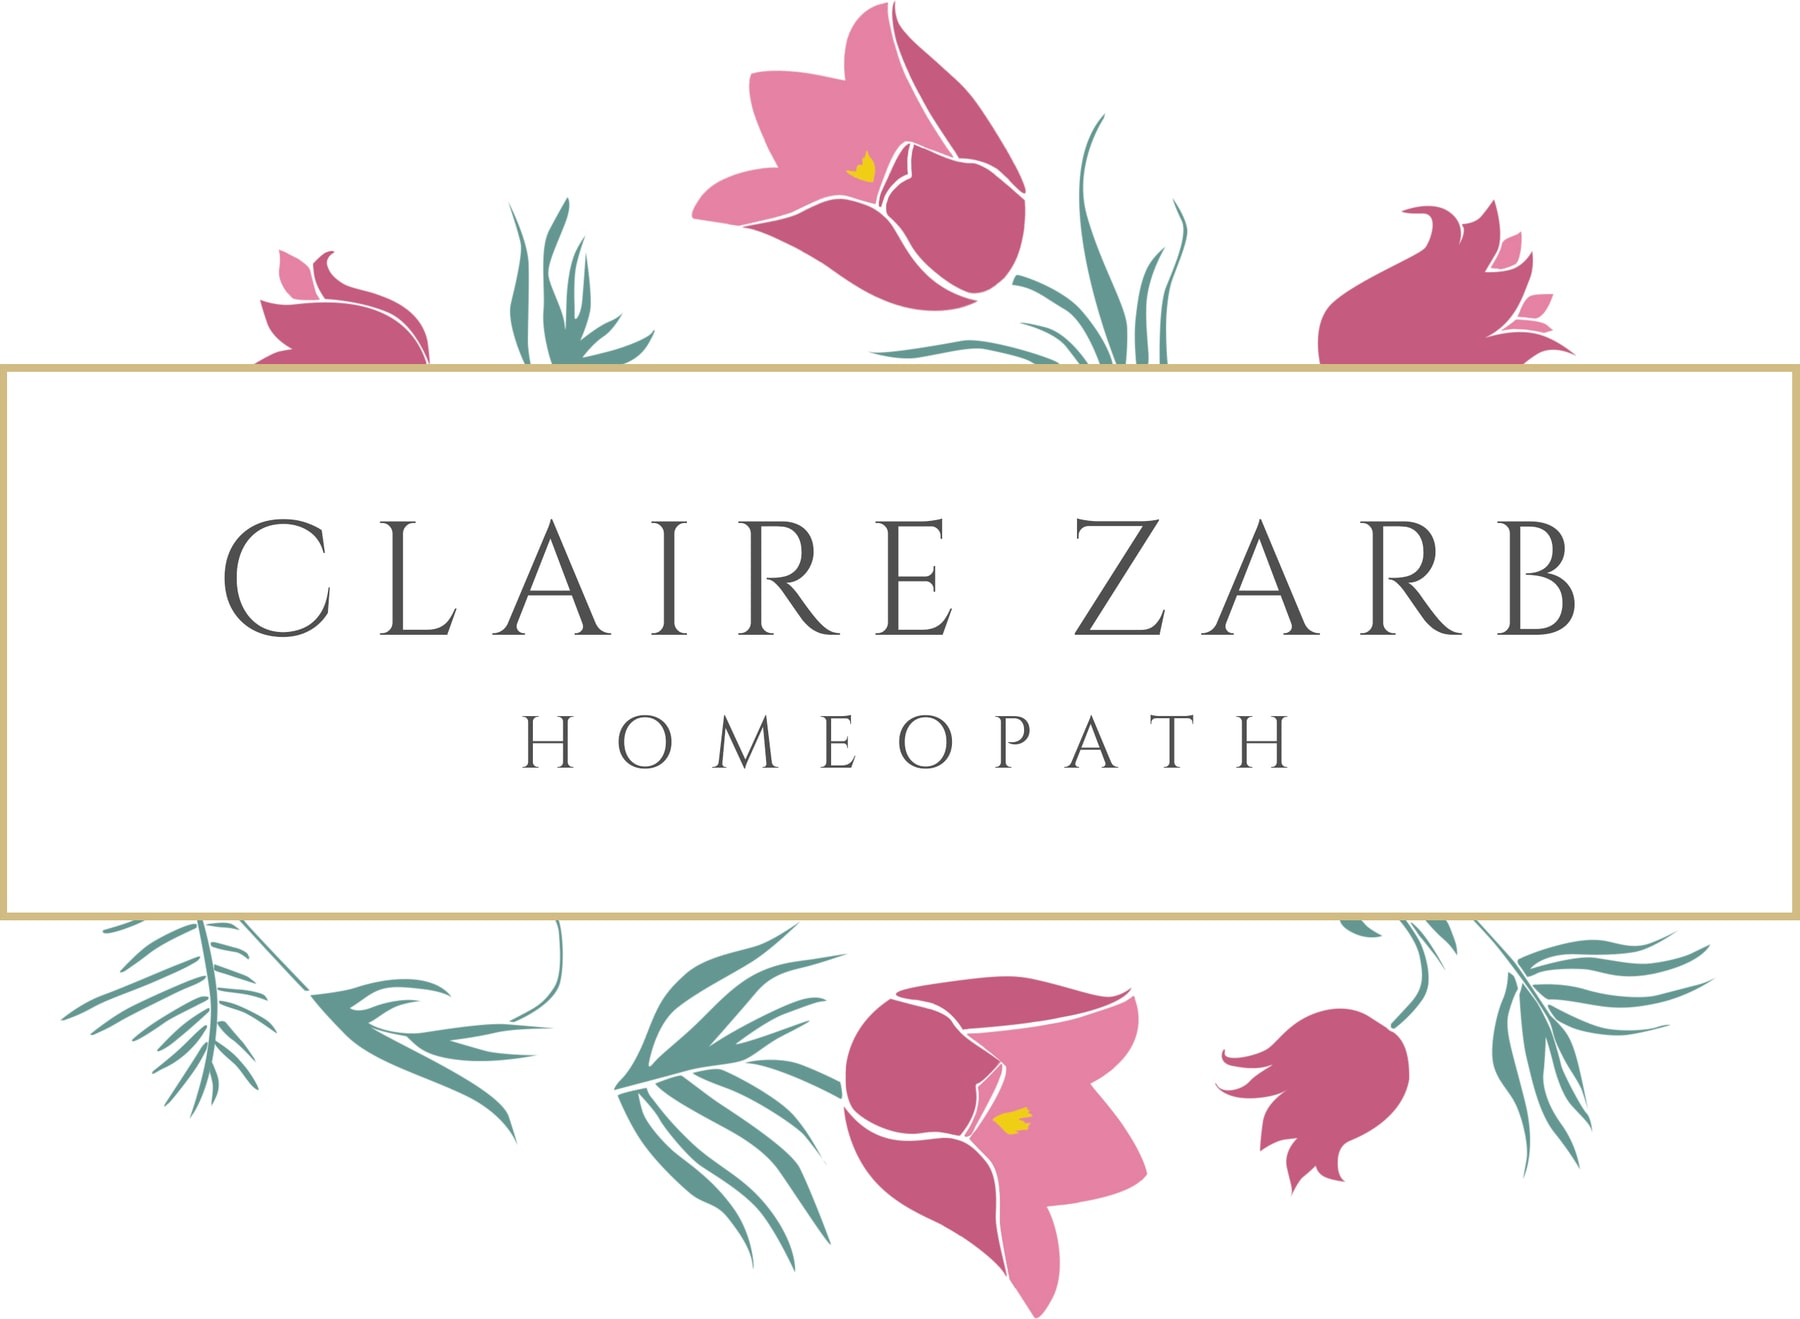 Claire Zarb - Homeopath